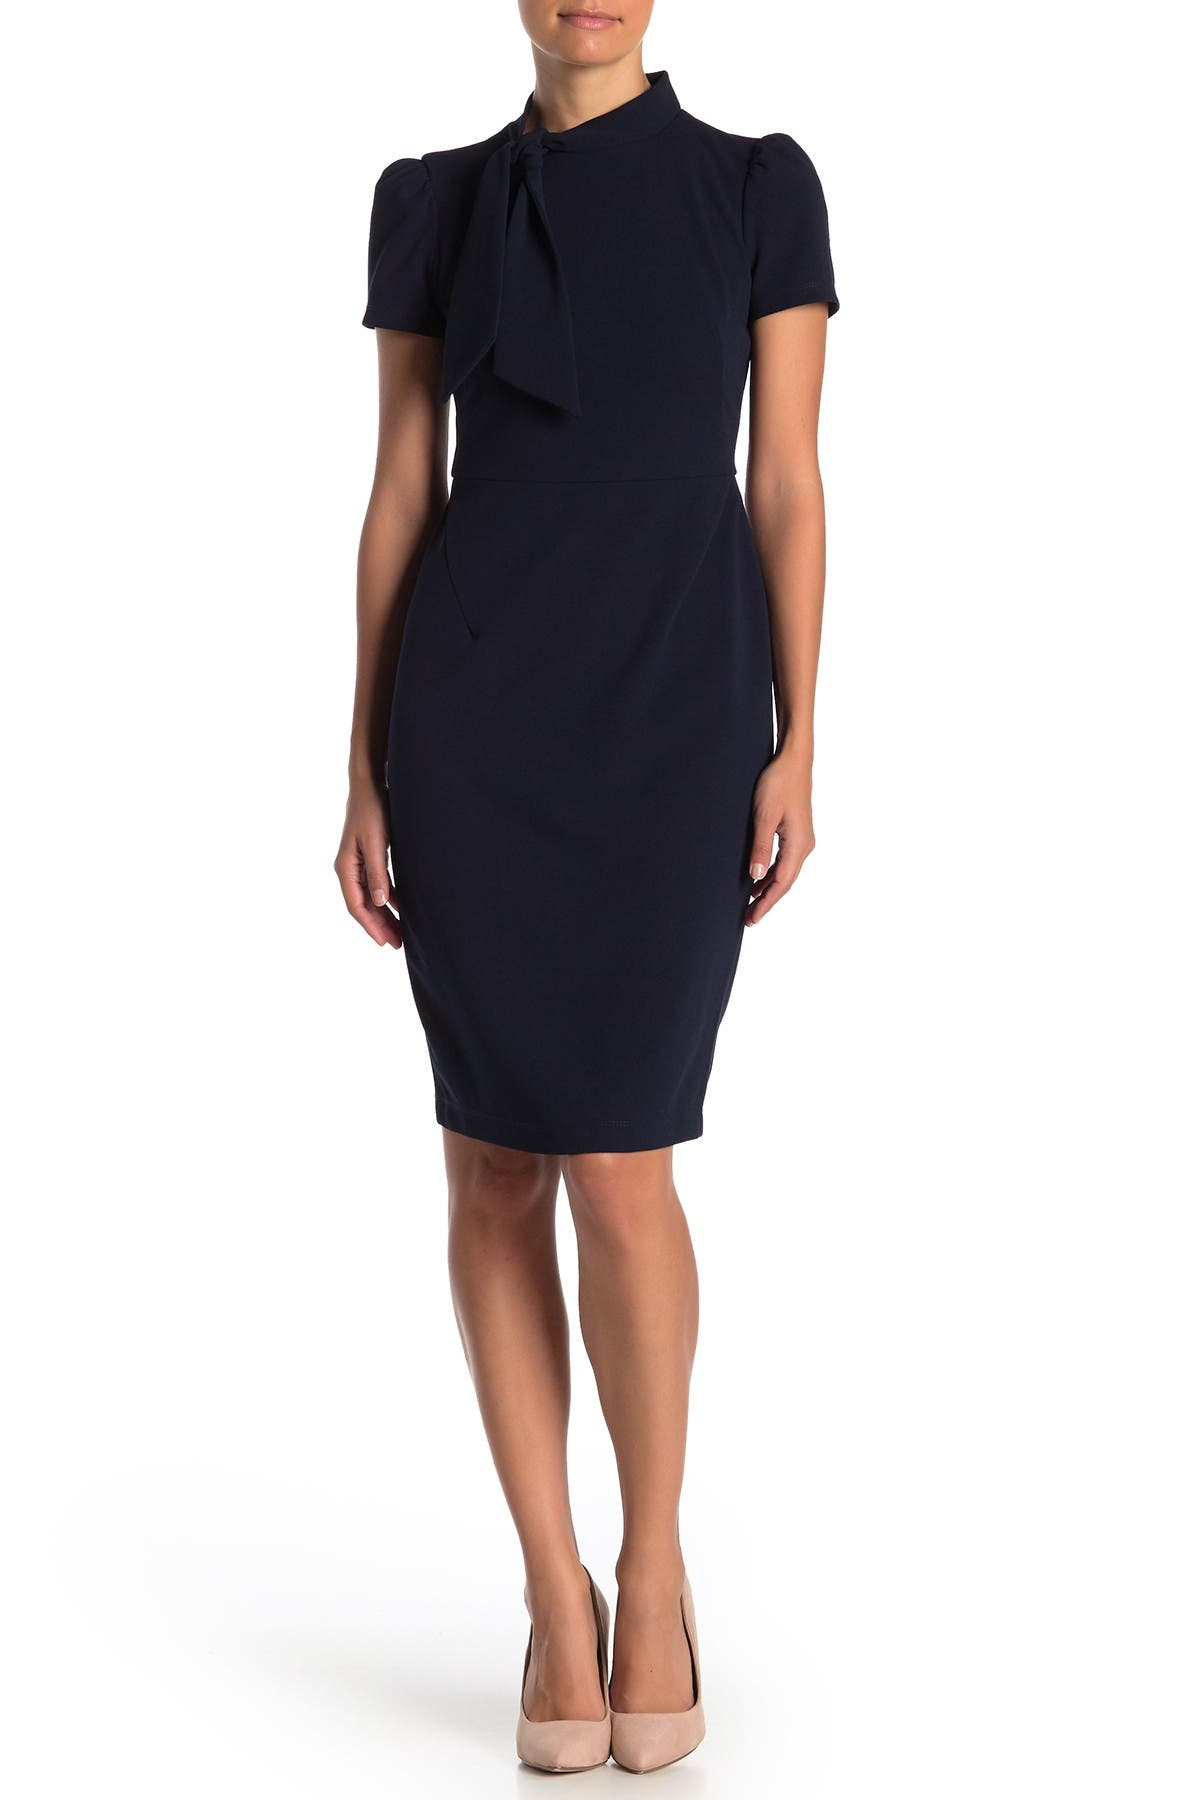 Image of Maggy London Neck Tie Short Sleeve Sheath Dress